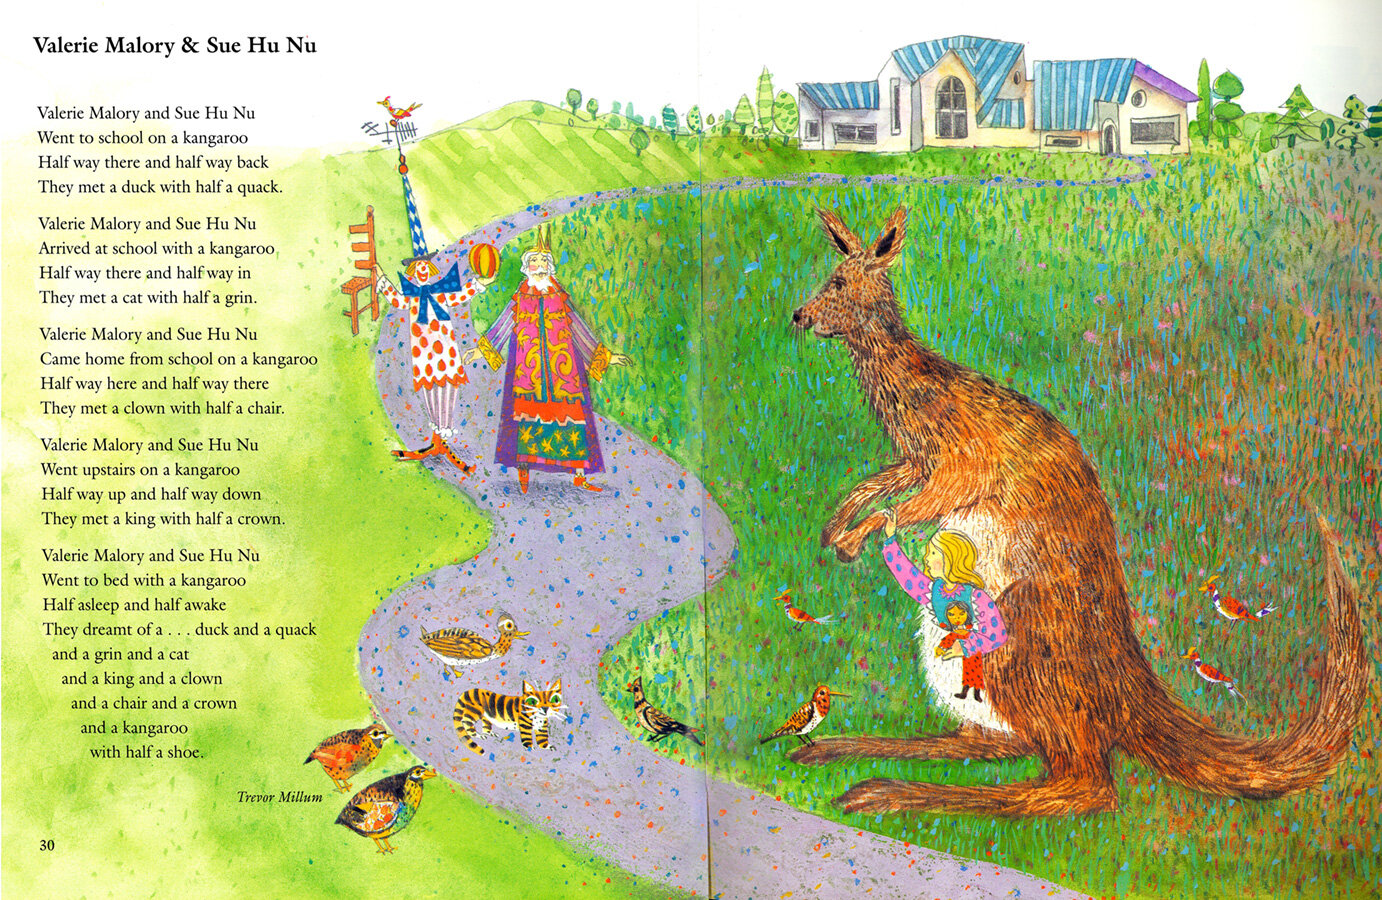 Valerie-Malory-&-Sue-Hu-Nu-illustration-kangaroo-by-Brian-Wildsmith.jpg